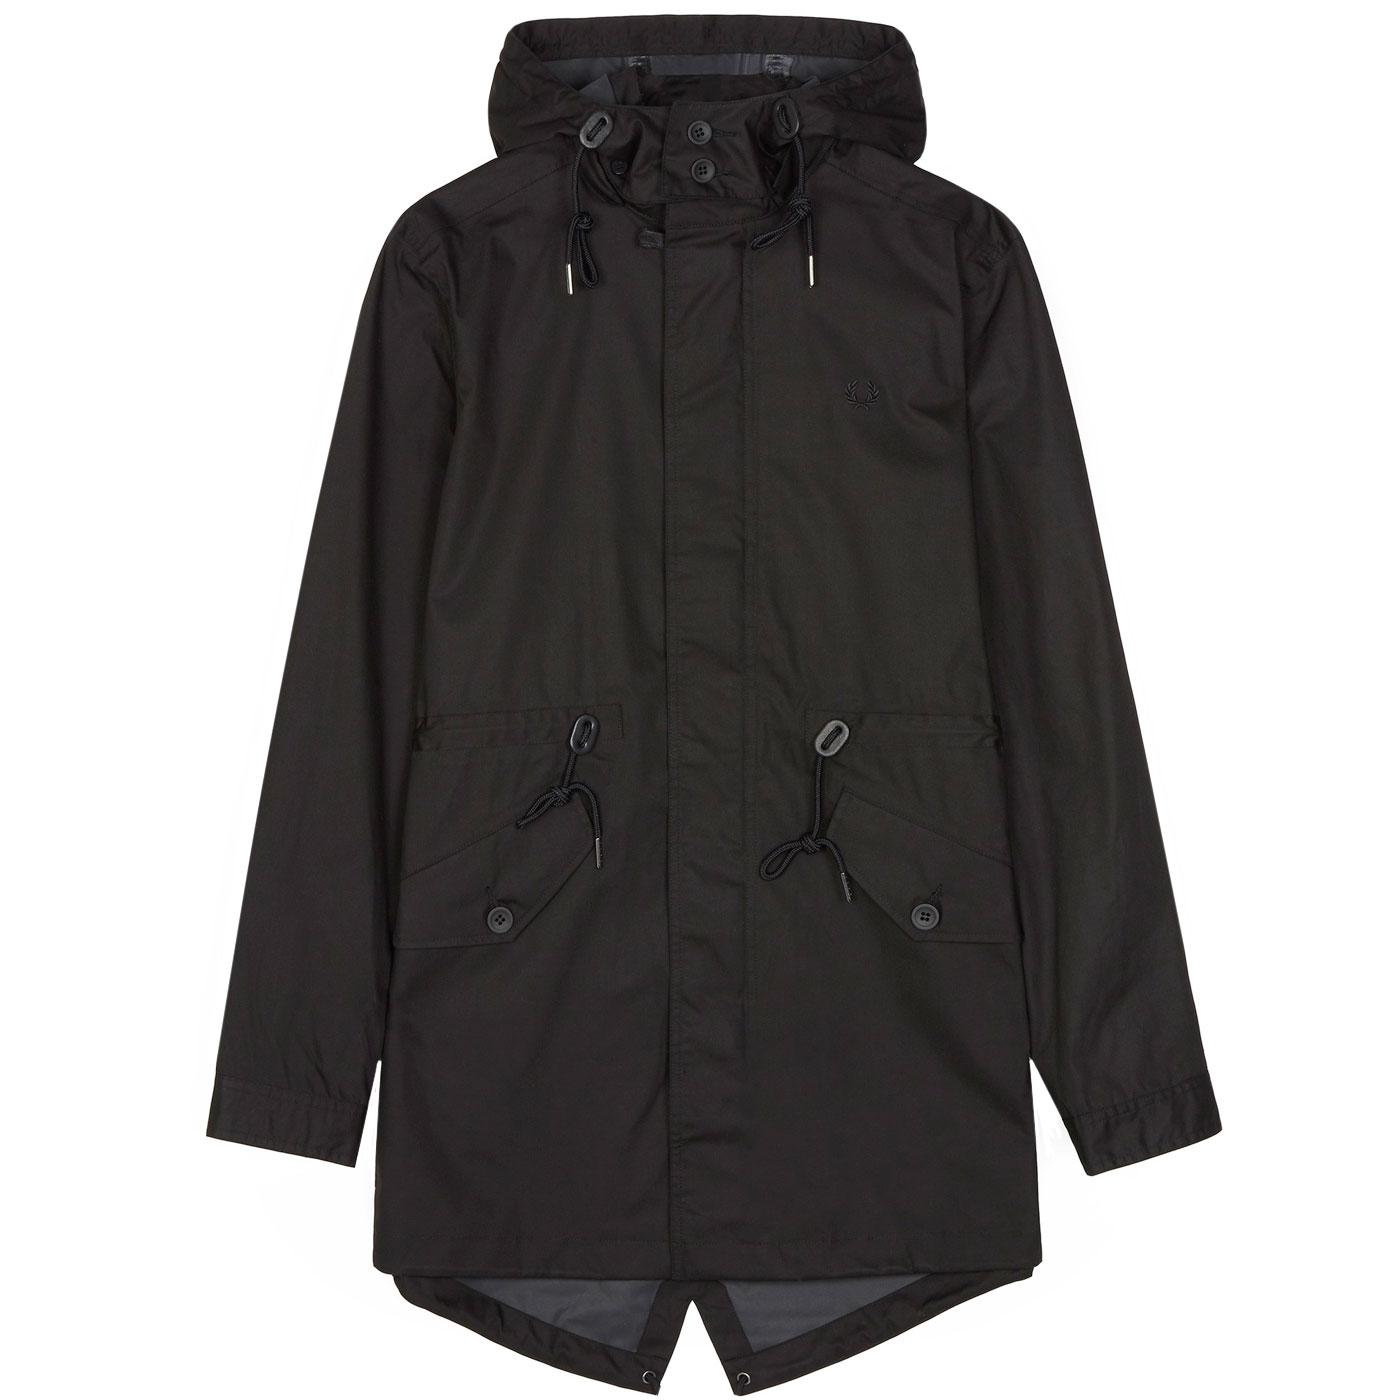 FRED PERRY Men's Mod Fishtail Parka Jacket (Black)